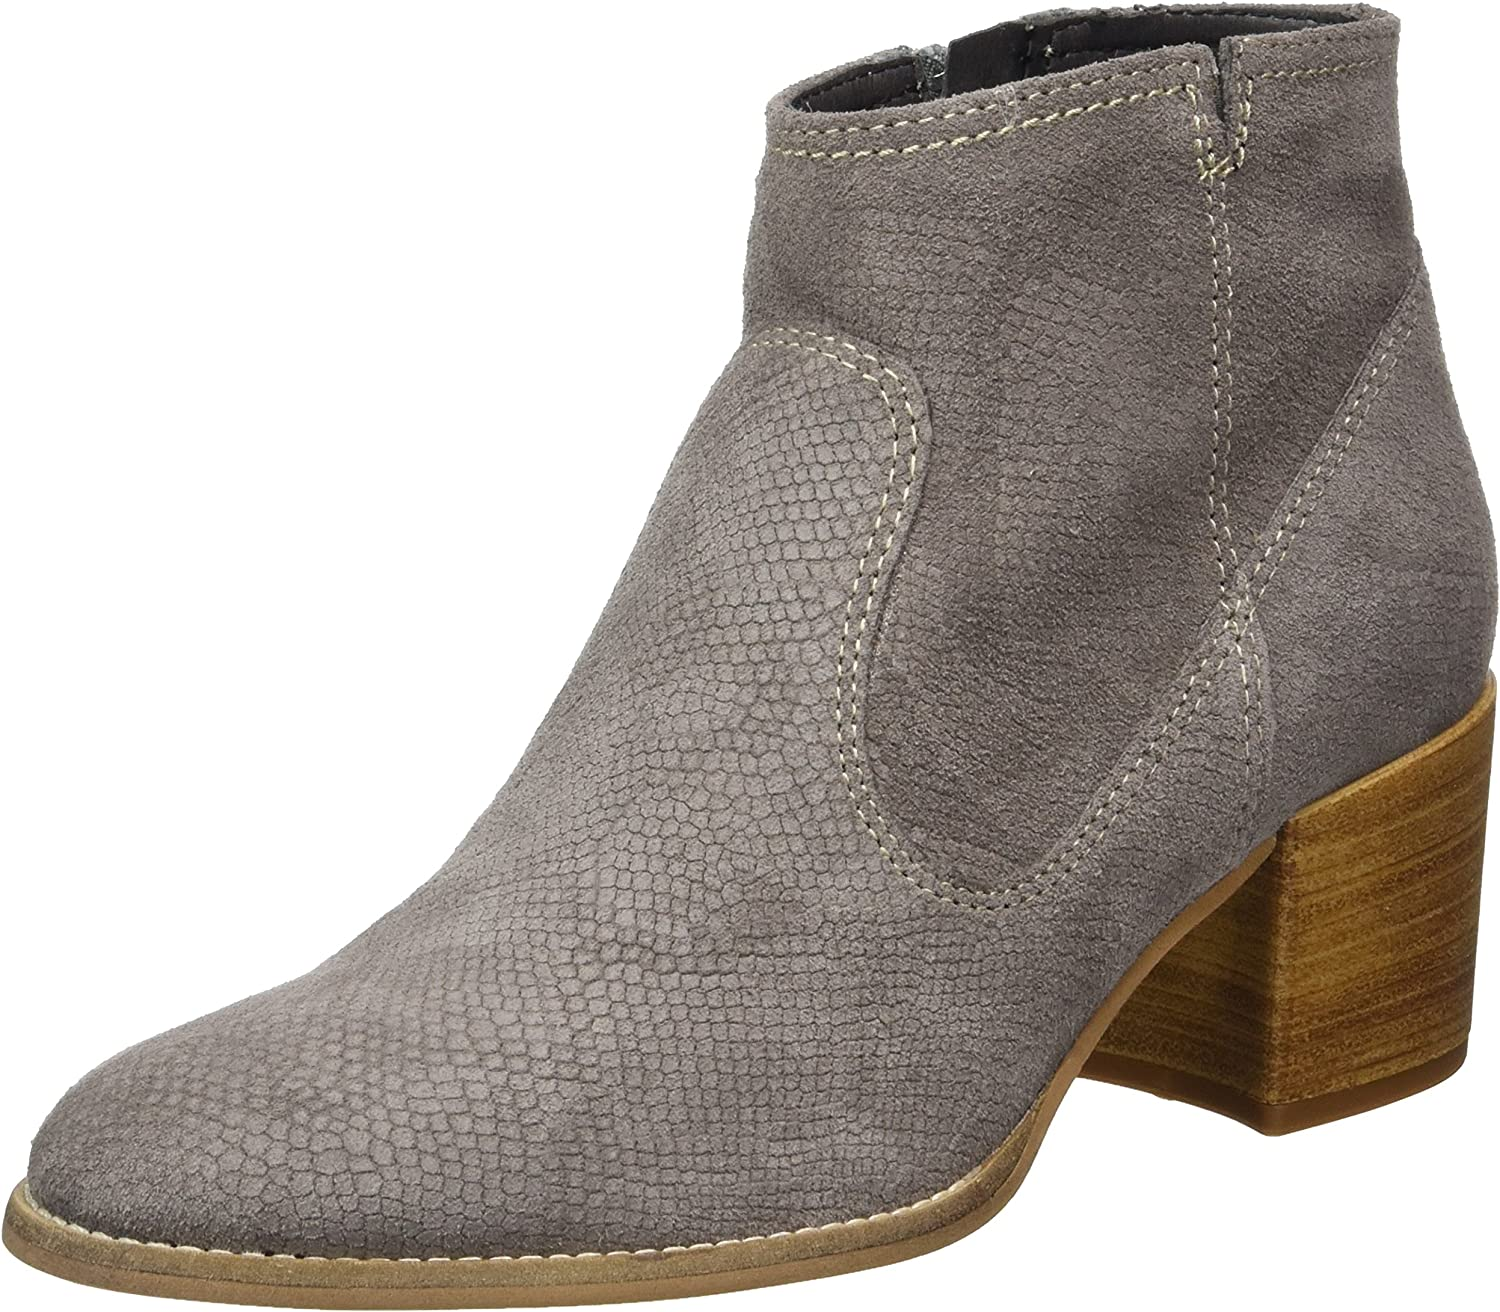 Tamaris Women's Leather Medium Heel Ankle Boot